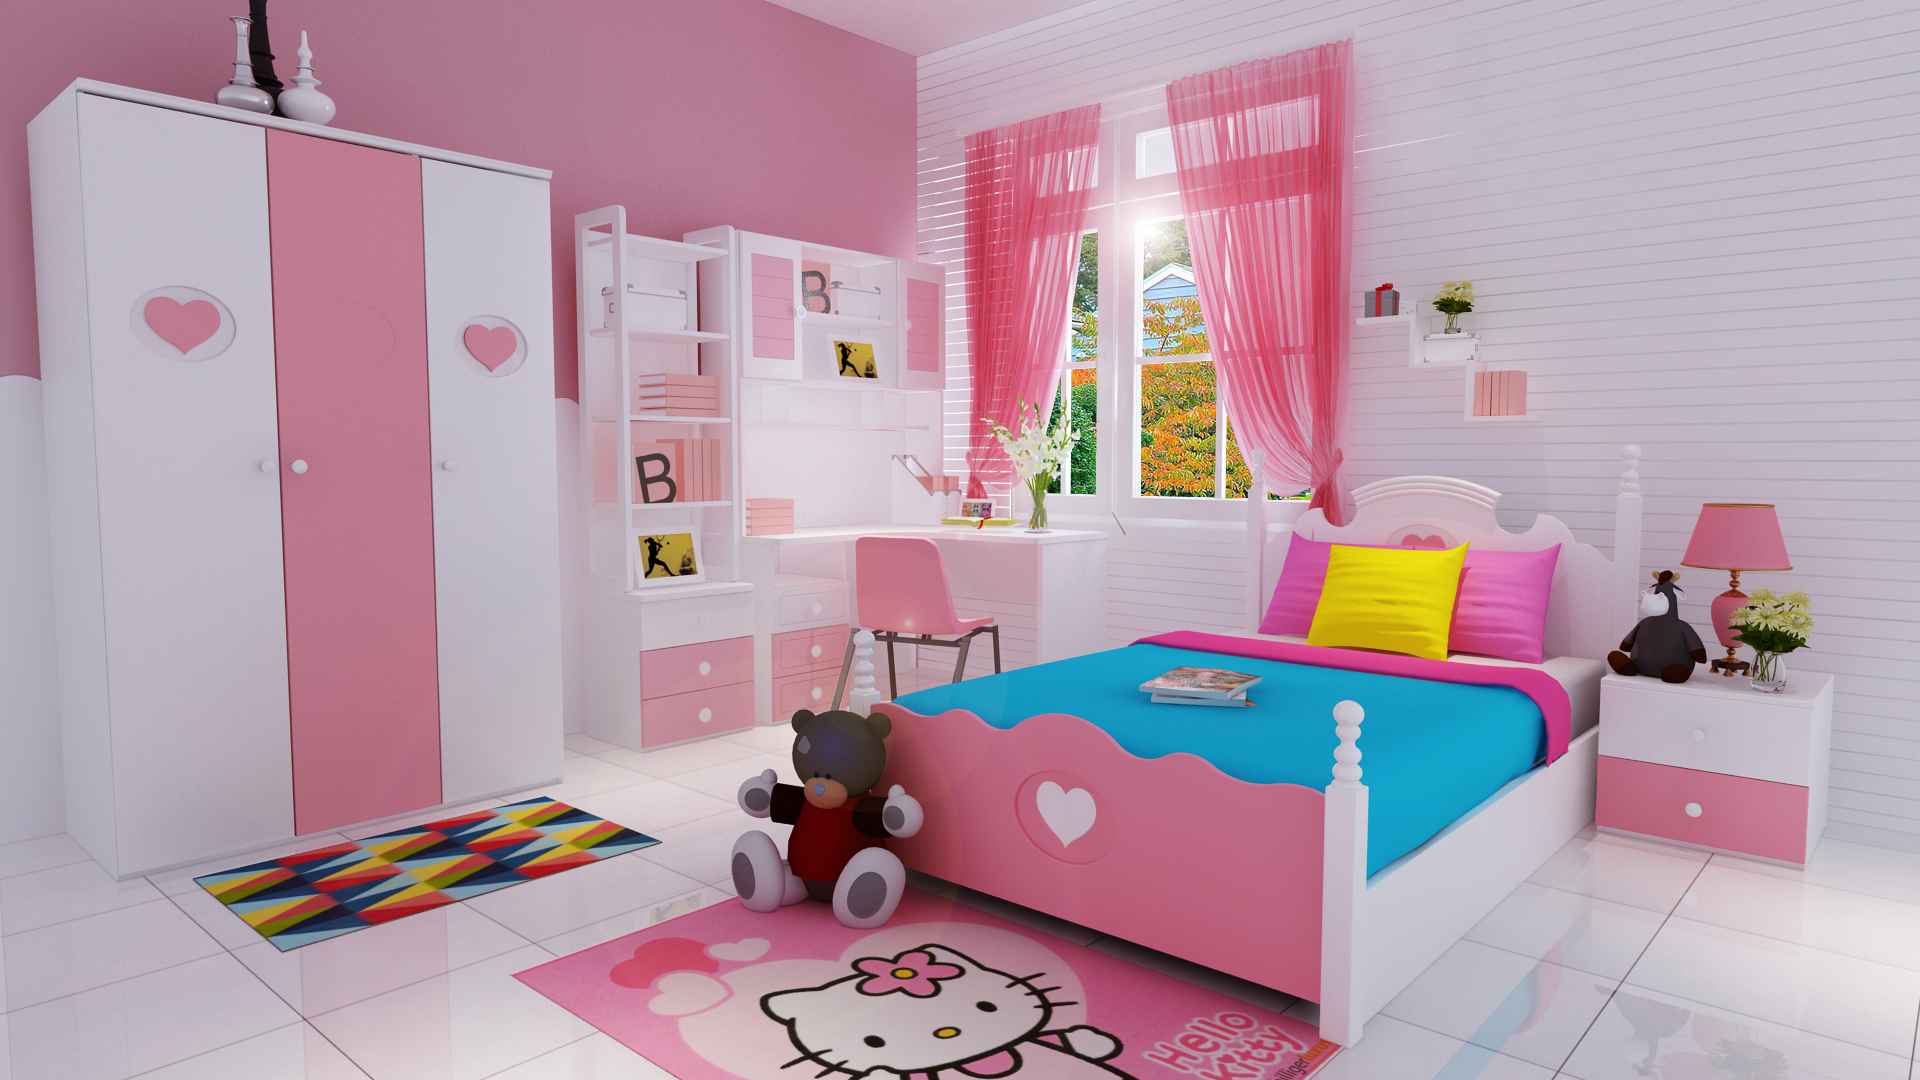 Kids bedroom ideas kids room decor kids room study for Room decor for kids